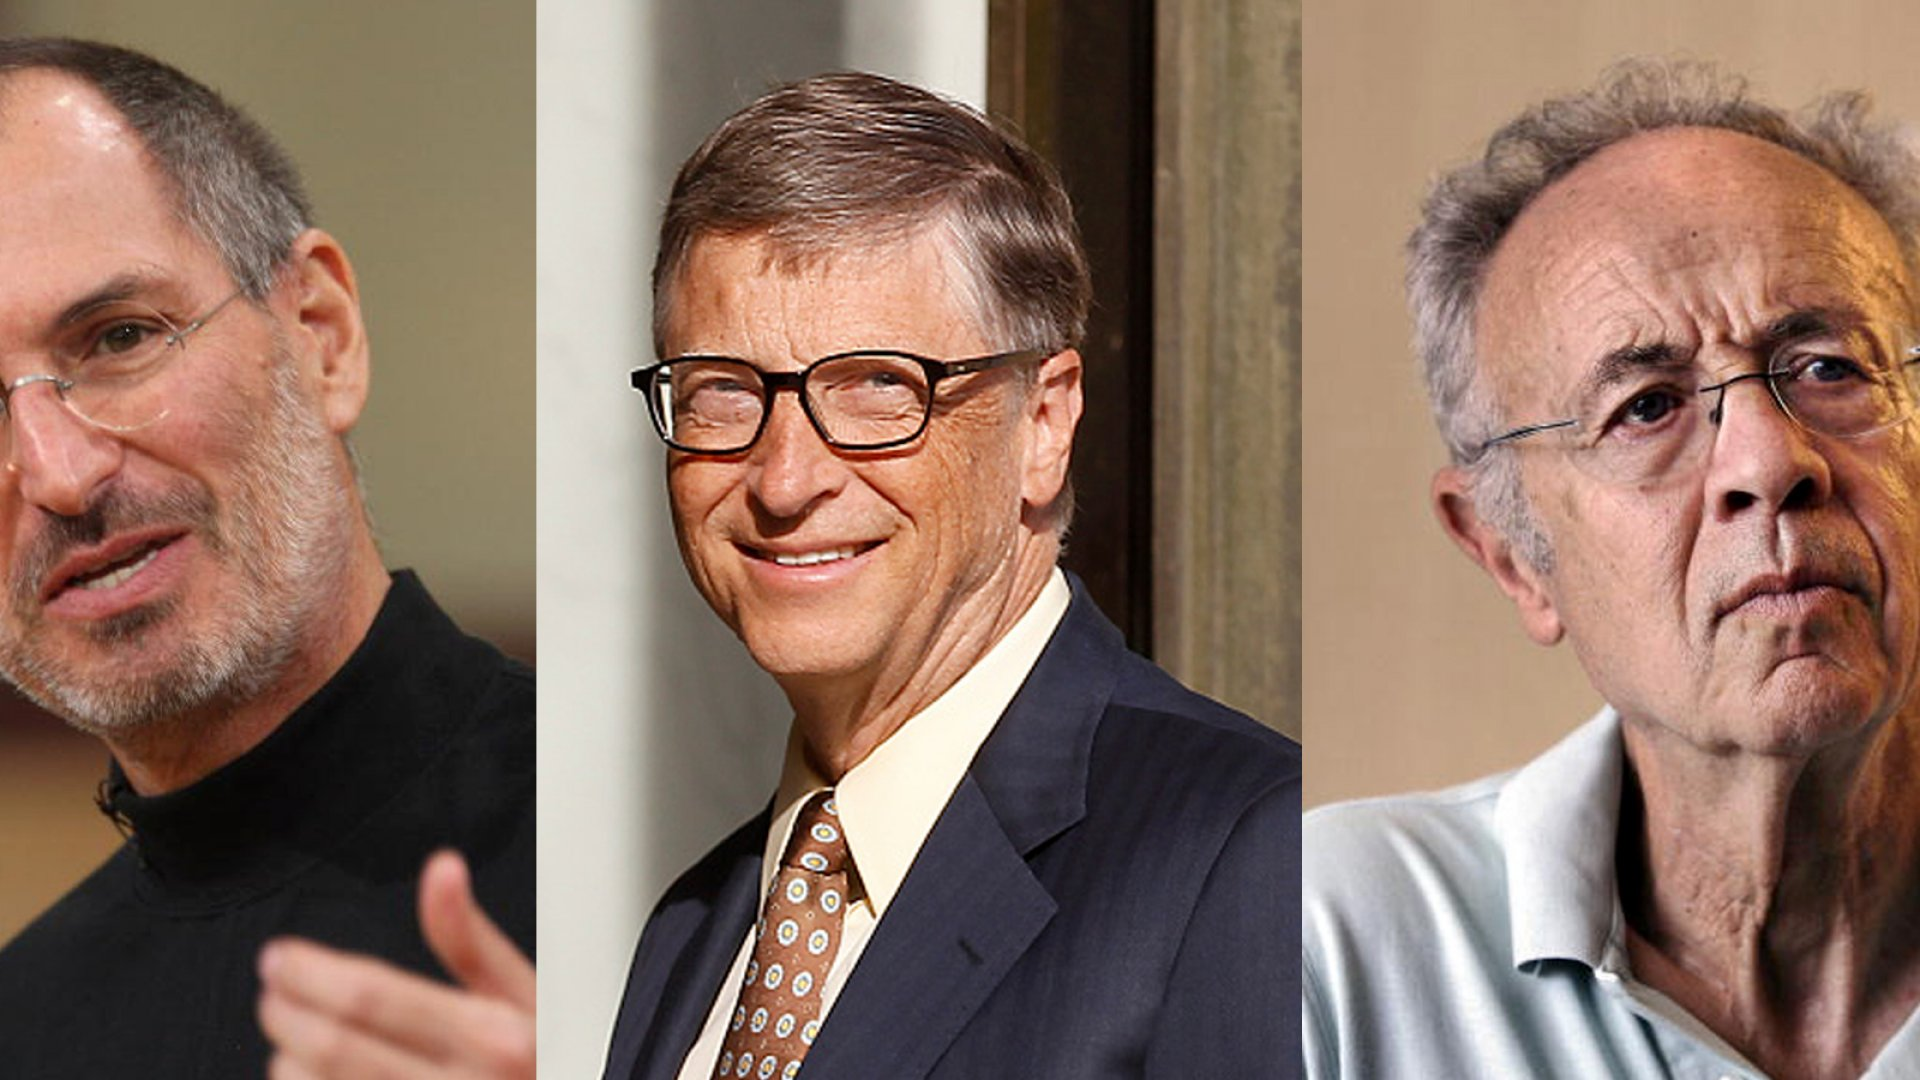 In key ways, Steve Jobs, Bill Gates, and Andy Grove were similar strategic thinkers.